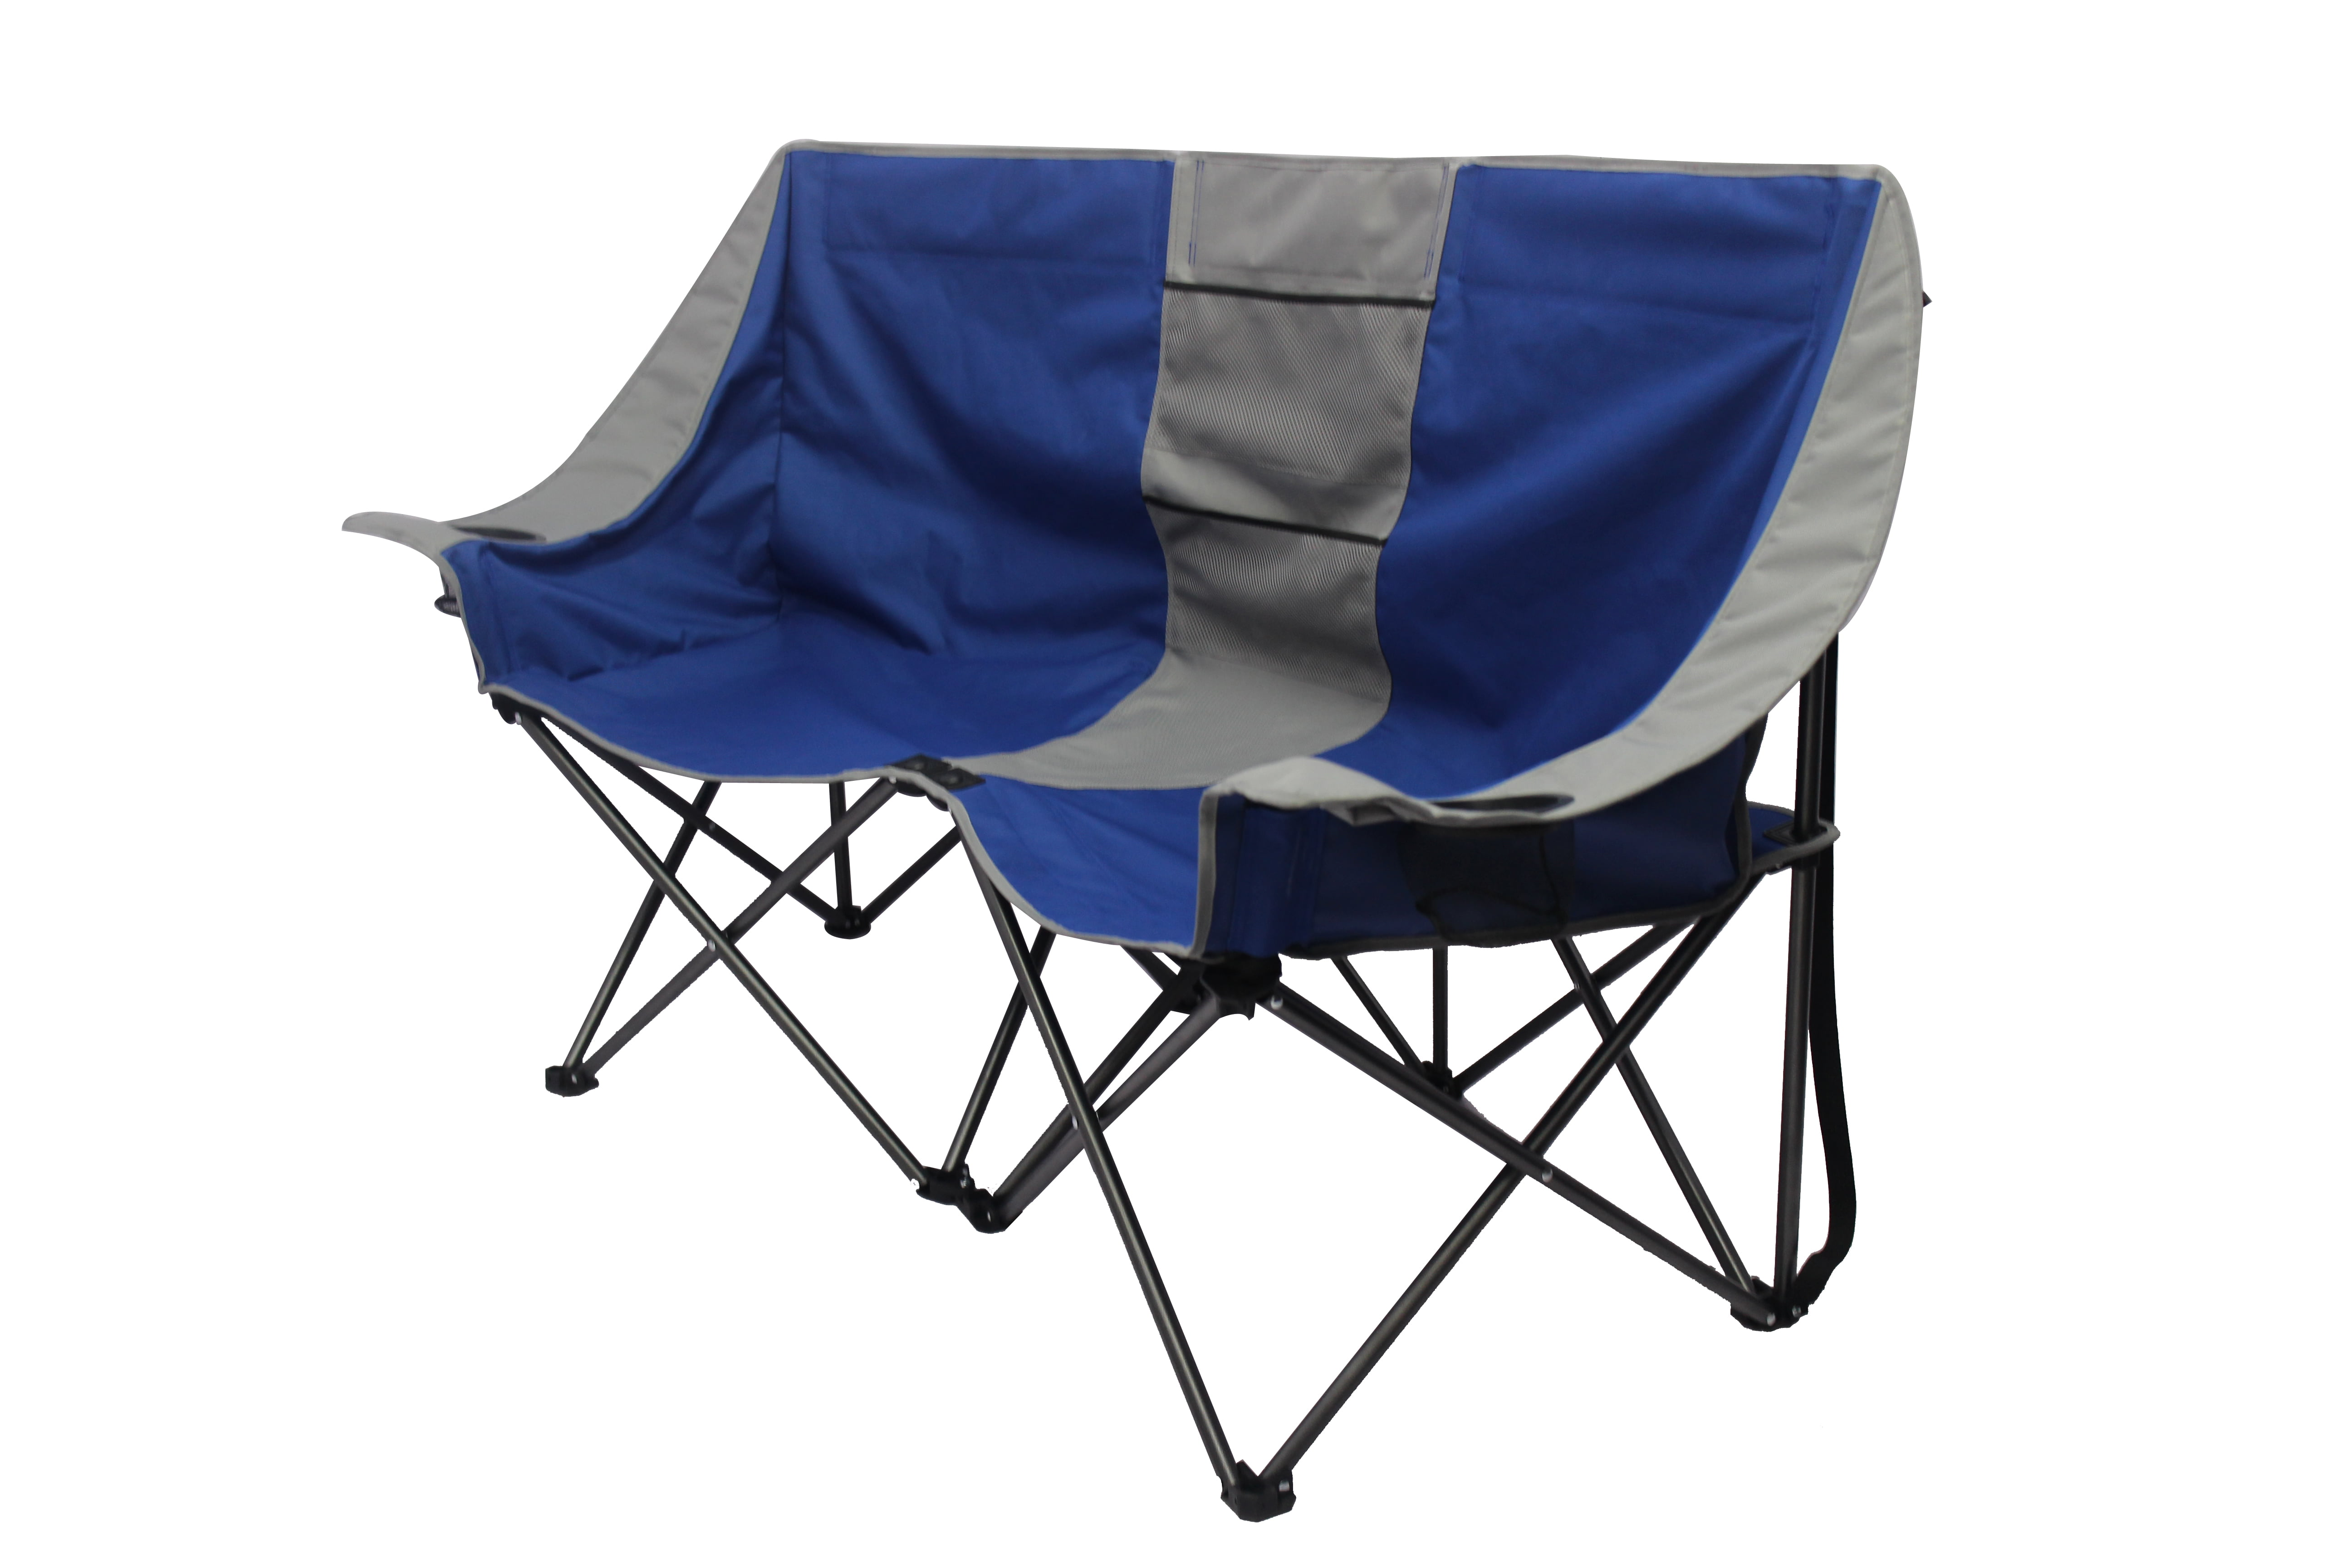 Remarkable Ozark Trail Two Person Conversation Camping Chair Walmart Com Lamtechconsult Wood Chair Design Ideas Lamtechconsultcom